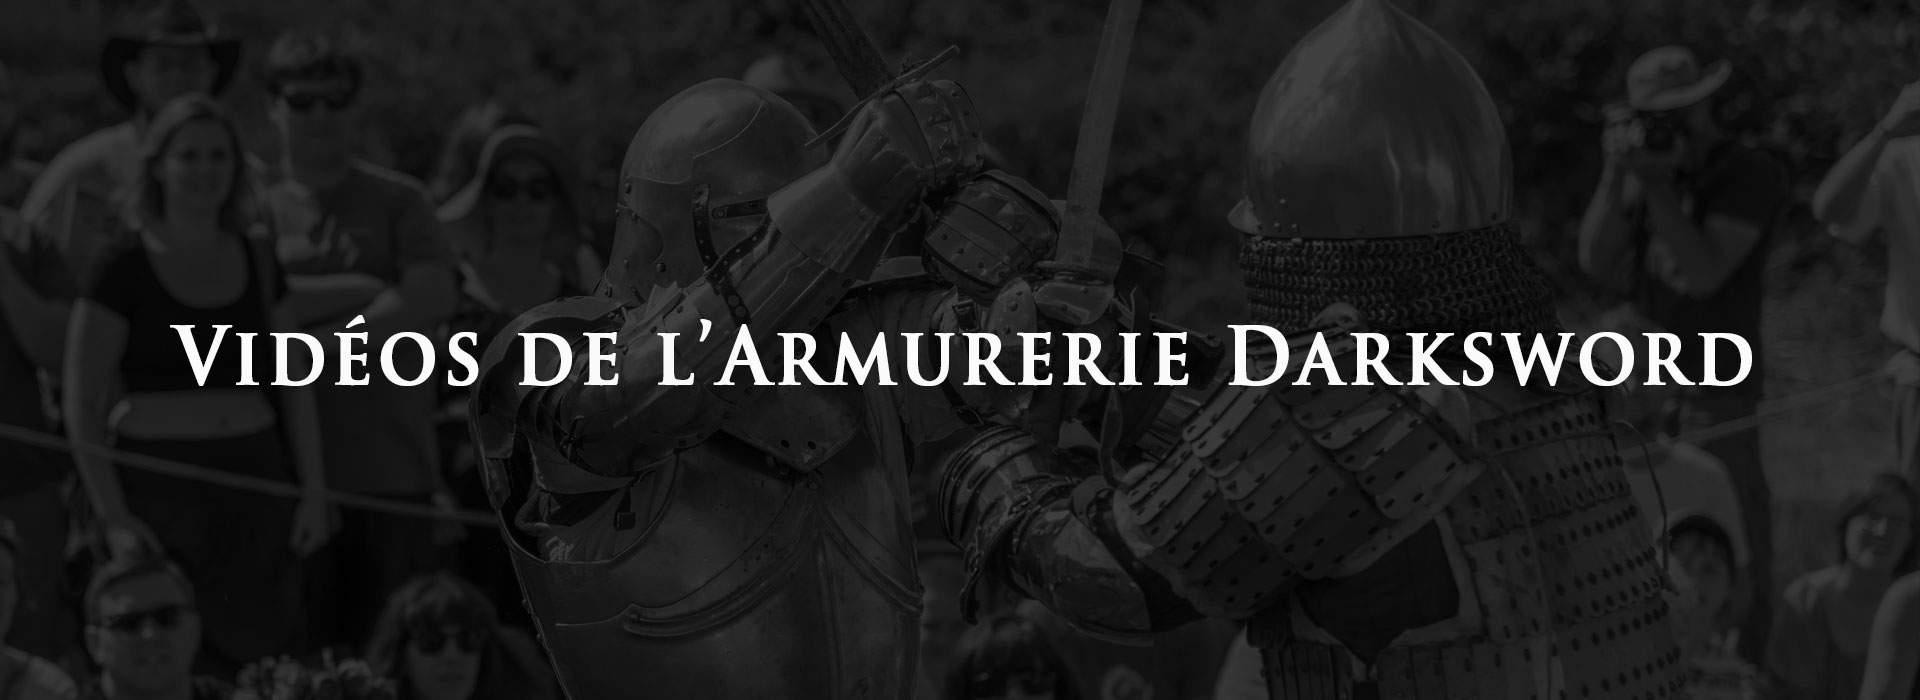 videos-de-armurerie-darksword-banniere